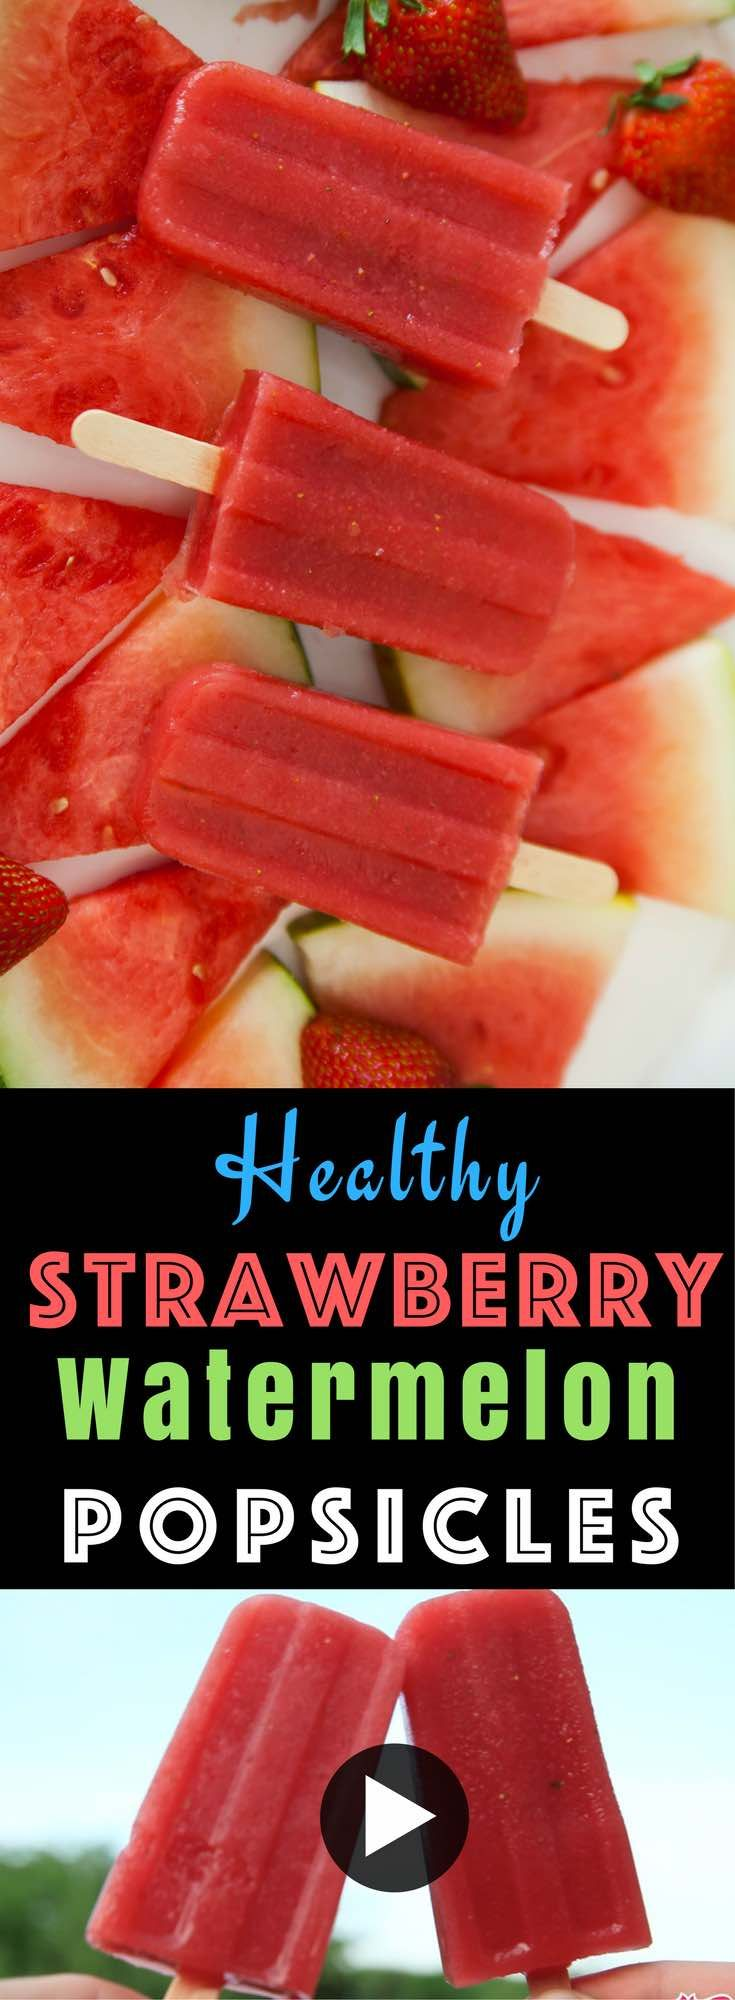 See how to make deliciously refreshing Strawberry Watermelon Strawberry Popsicles with only 3 ingredients. Easy and fun to make! With video.